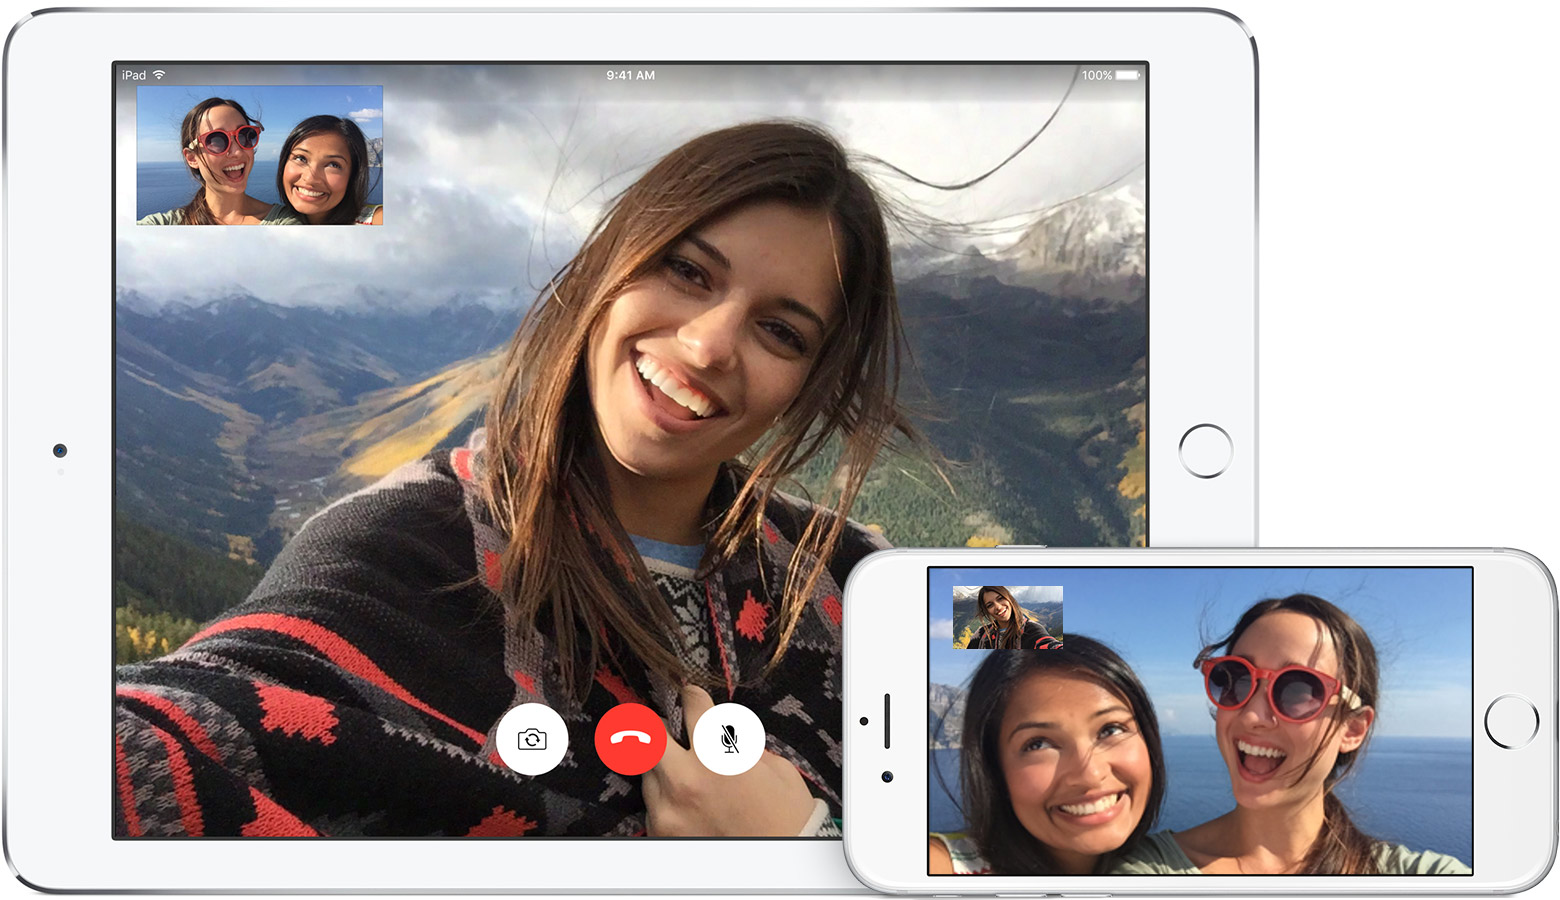 Une conversation Facetime entre l'iPhone et l'iPad